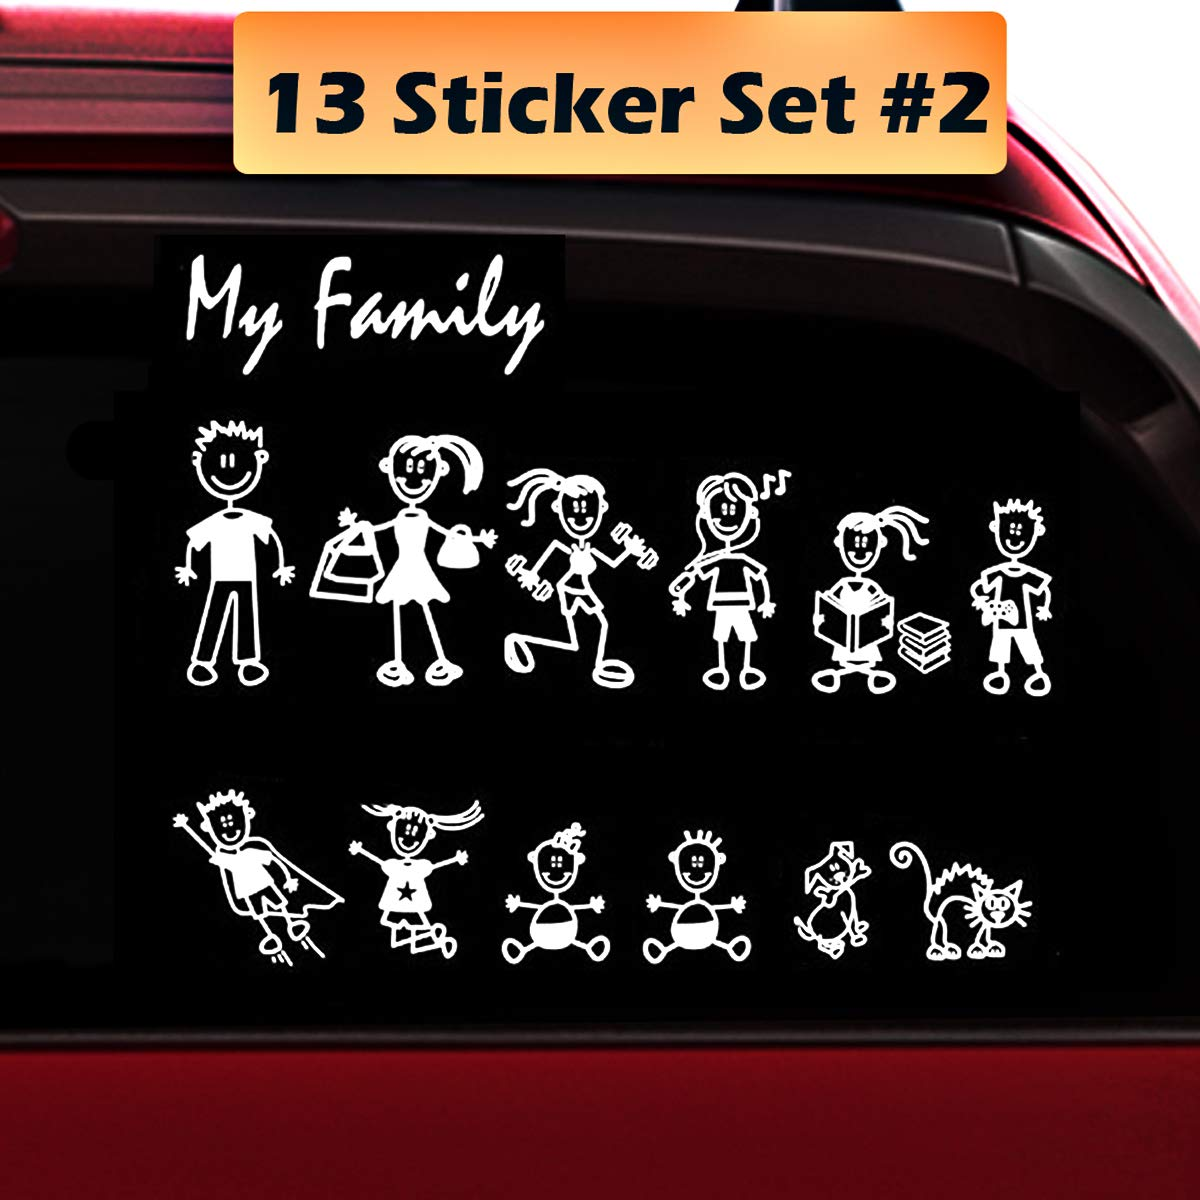 Amazon com totomo 13 stick figure my family car stickers style2 with pet dog cat family car decal sticker for windows bumper automotive